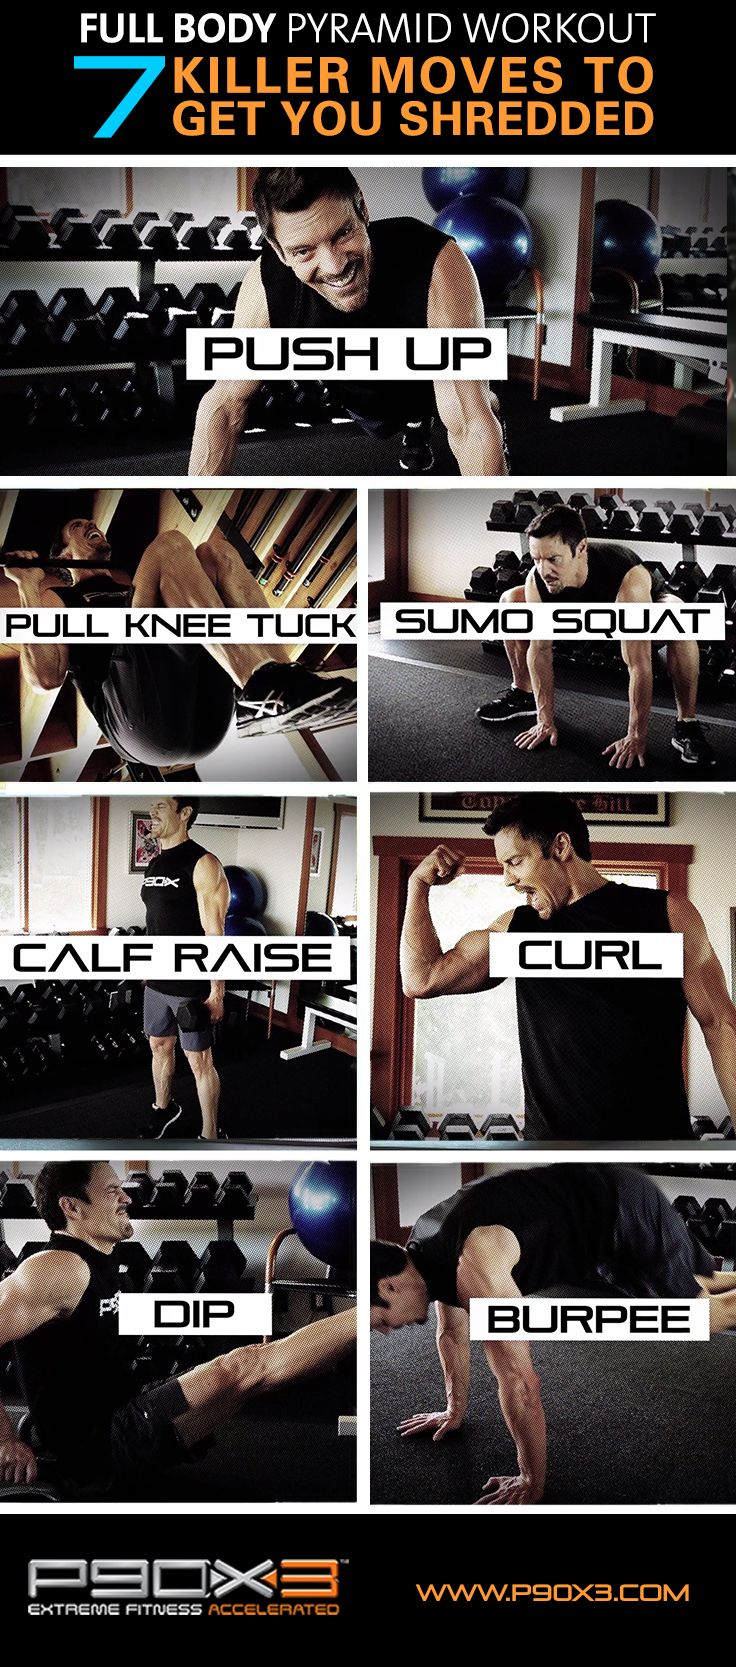 Push Ups, Pull Knee Tucks, Dips, Burpees... HOLY SMOKES KIDS, this workout might break you! JUST KIDDING..but it's sure to give you a full body workout!